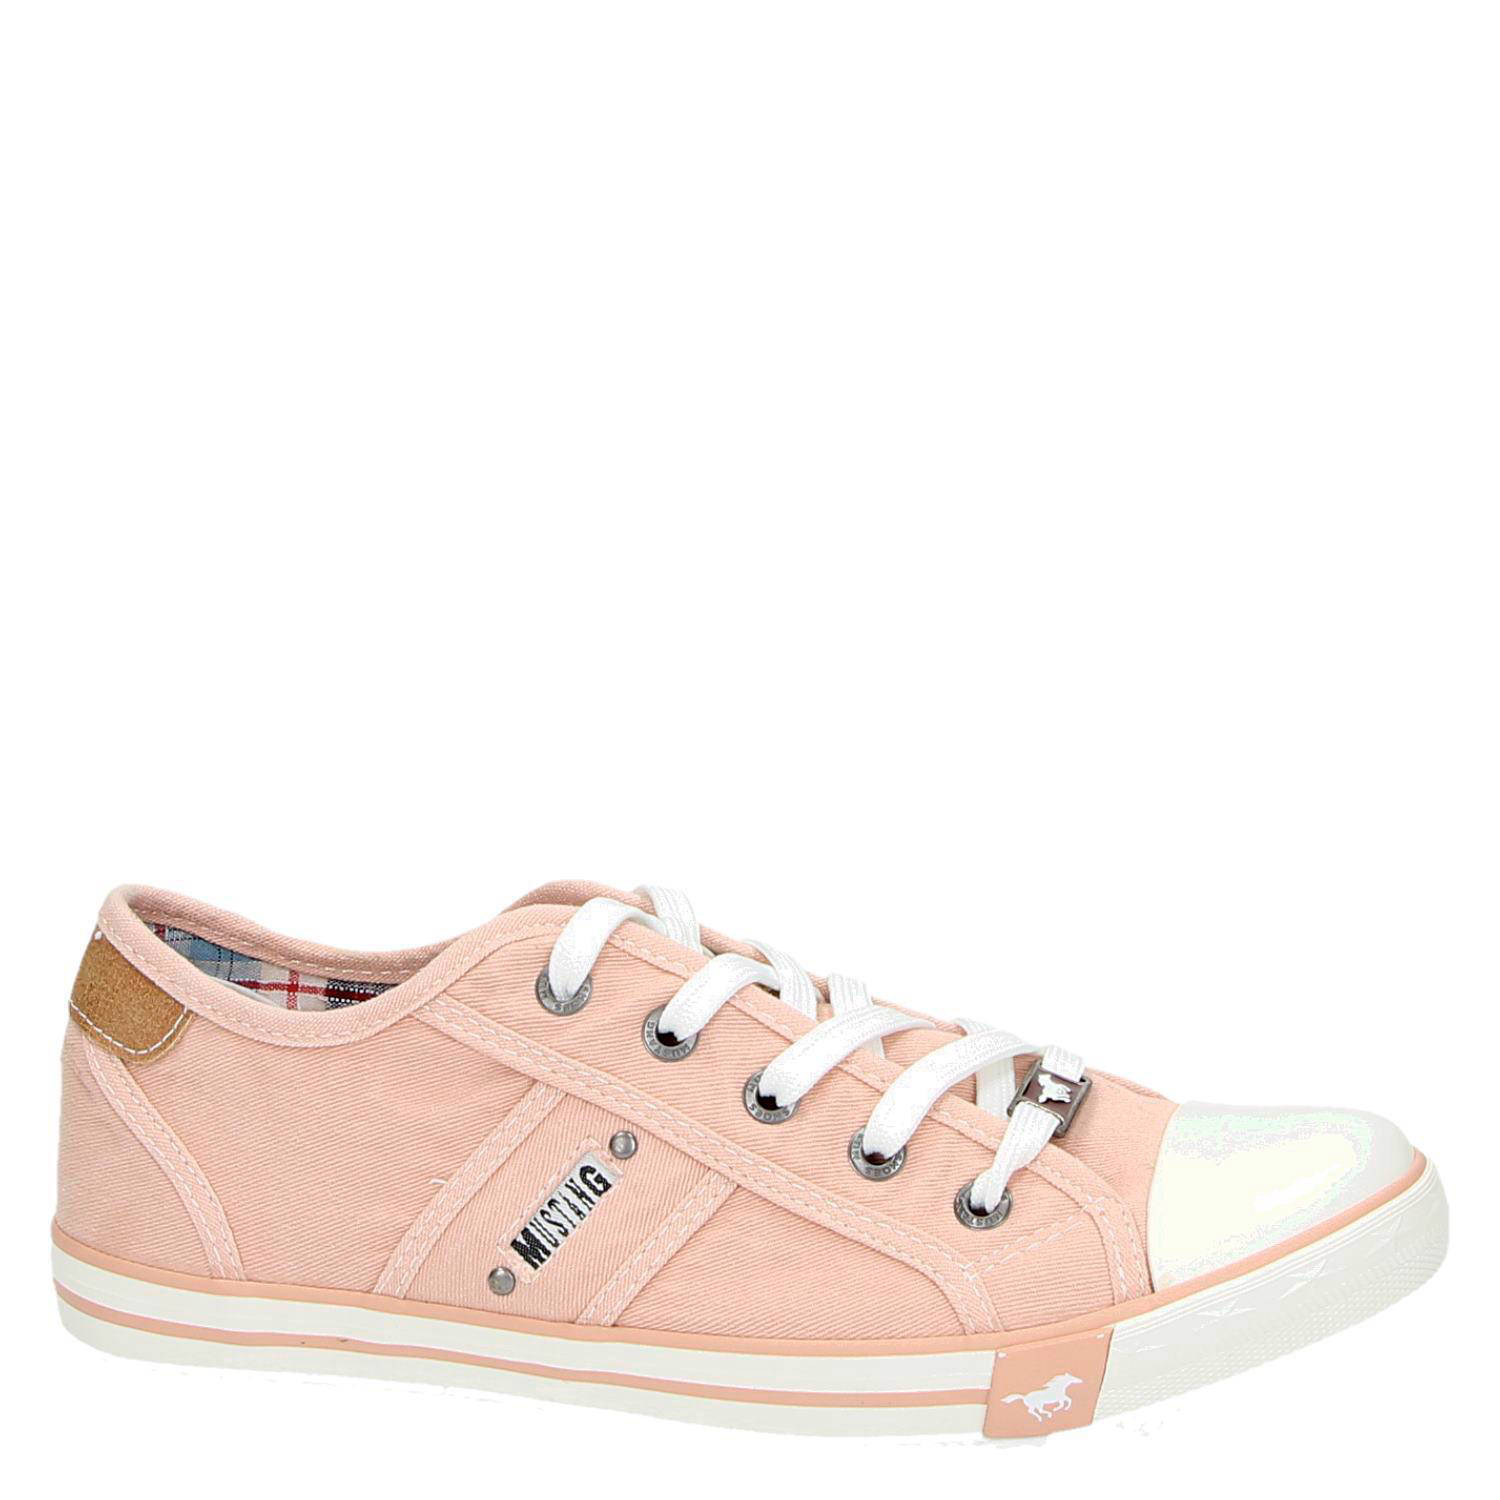 Chaussures Mustang Rose upXCT2Q